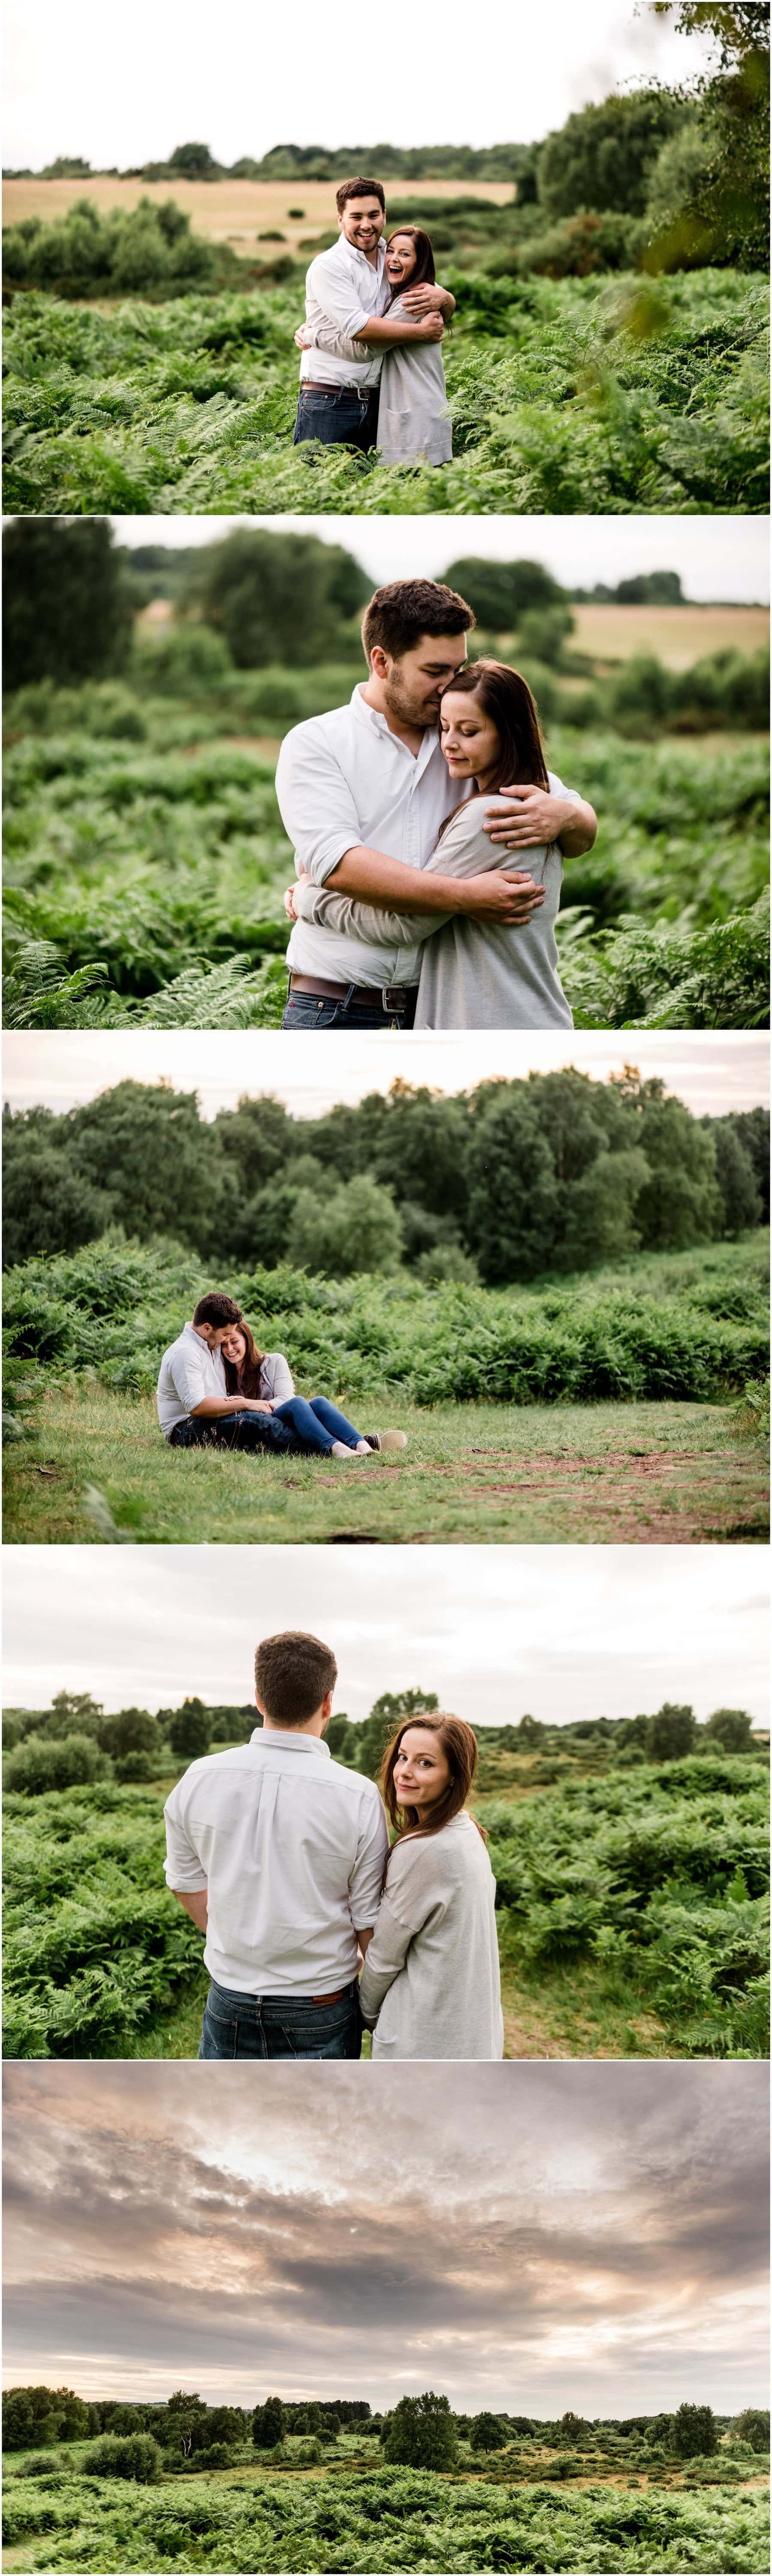 Ffion and Hefin's golden hour engagement shoot in Sutton Park, Sutton Coldfield, ahead of their wedding in Wrexham, Wales this weekend. Photos by Lisa carpenter Photography, West Midlands based wedding photographer specialising in alternative, cool and quirky wedding photos.